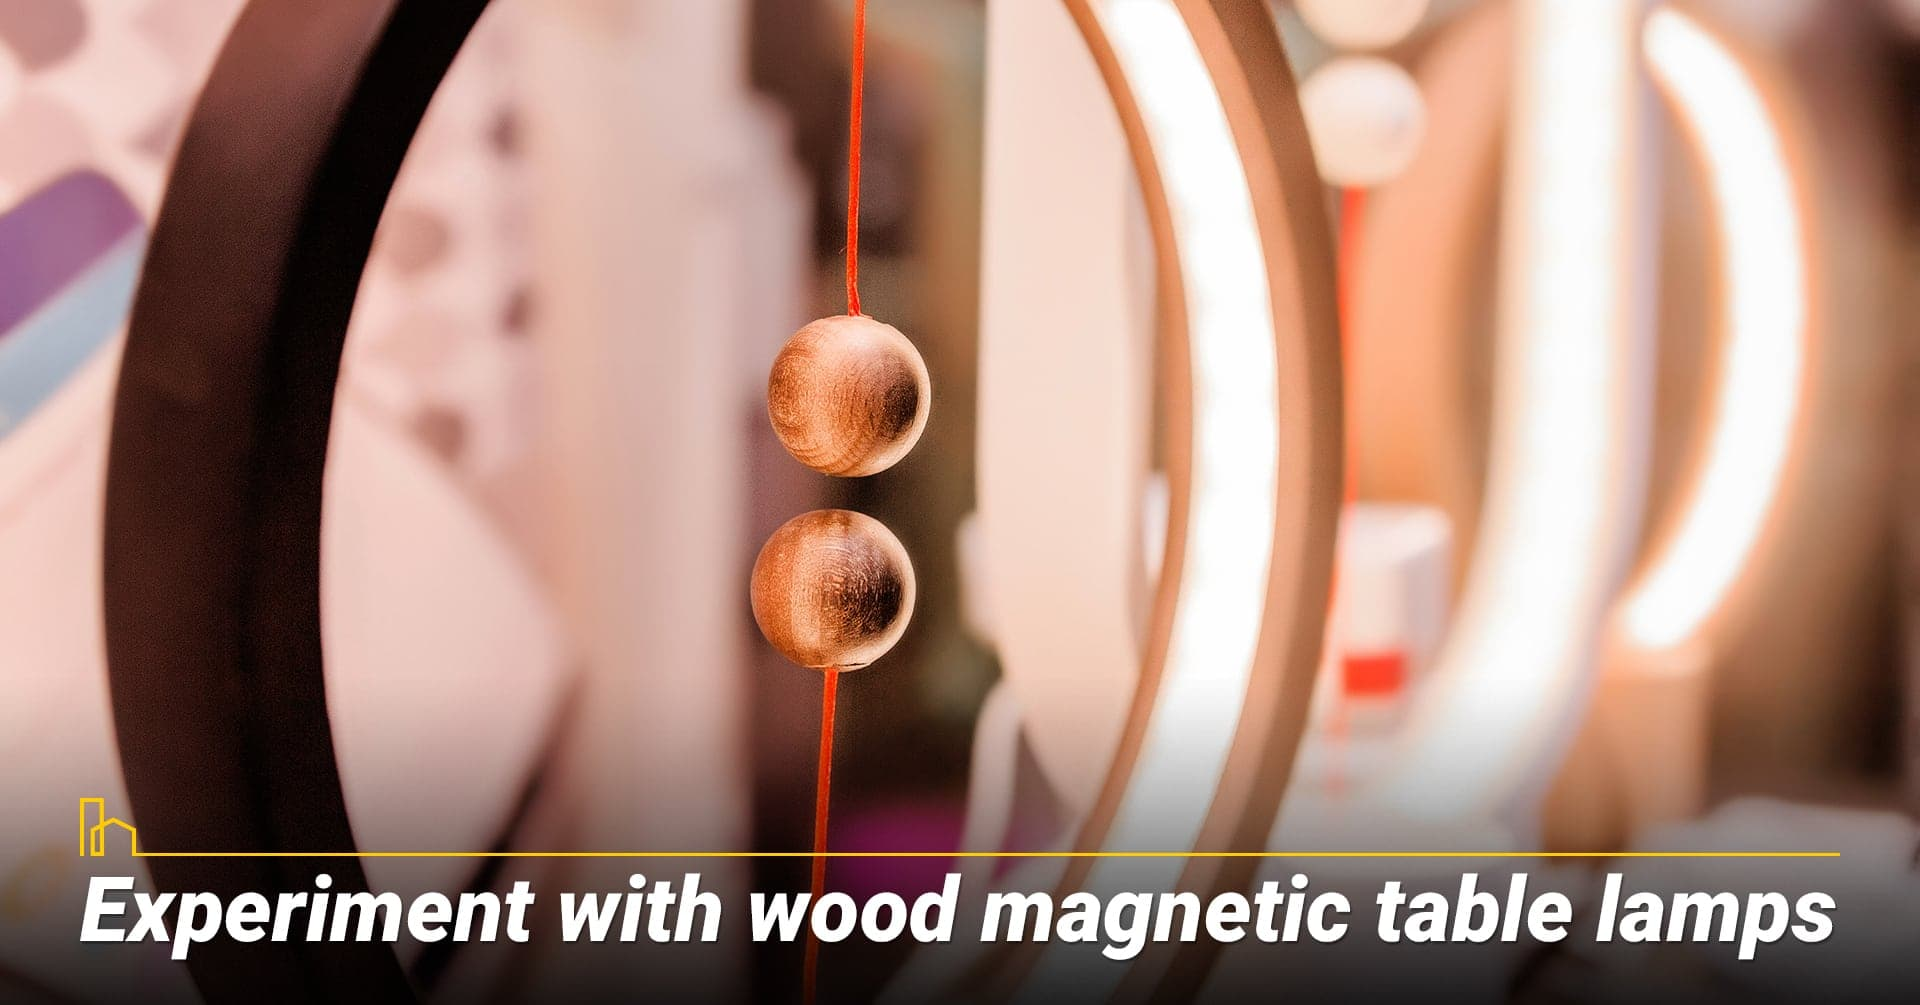 Experiment with wood magnetic table lamps, try different types of table lamps